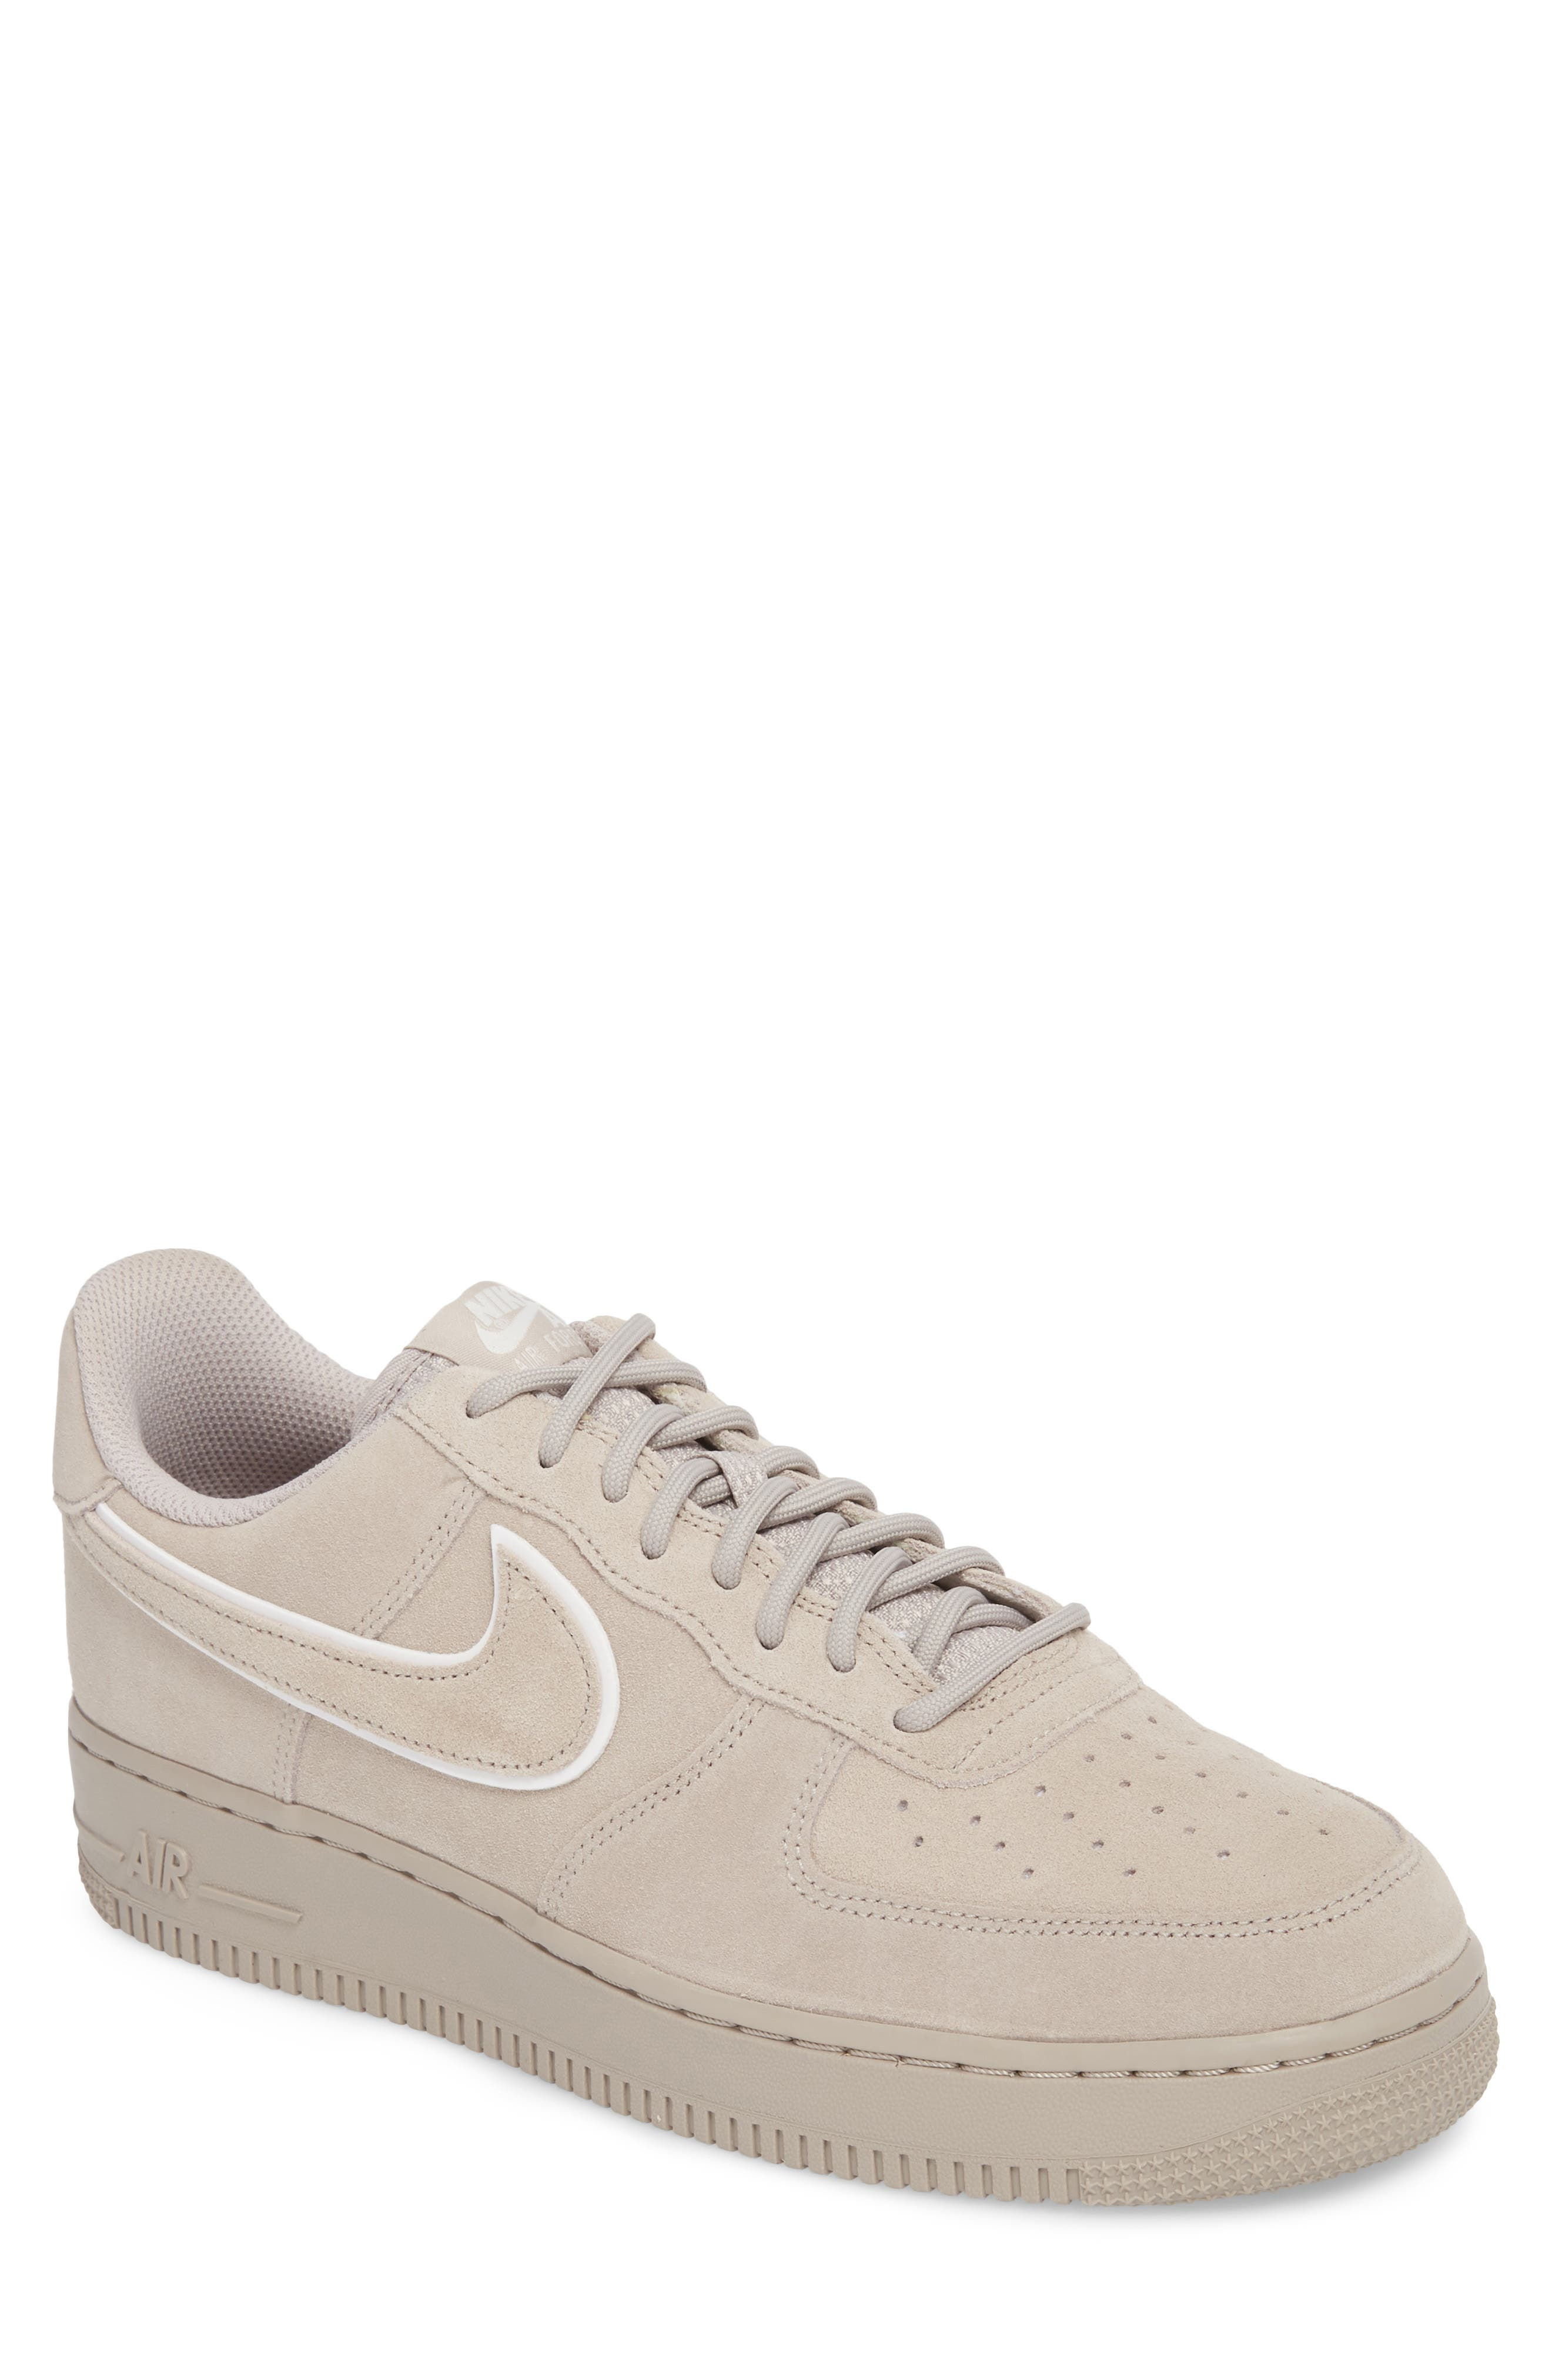 Air Force 1 '07 Low LV8 Sneaker,                         Main,                         color, Moon Particle/ Sepia Stone